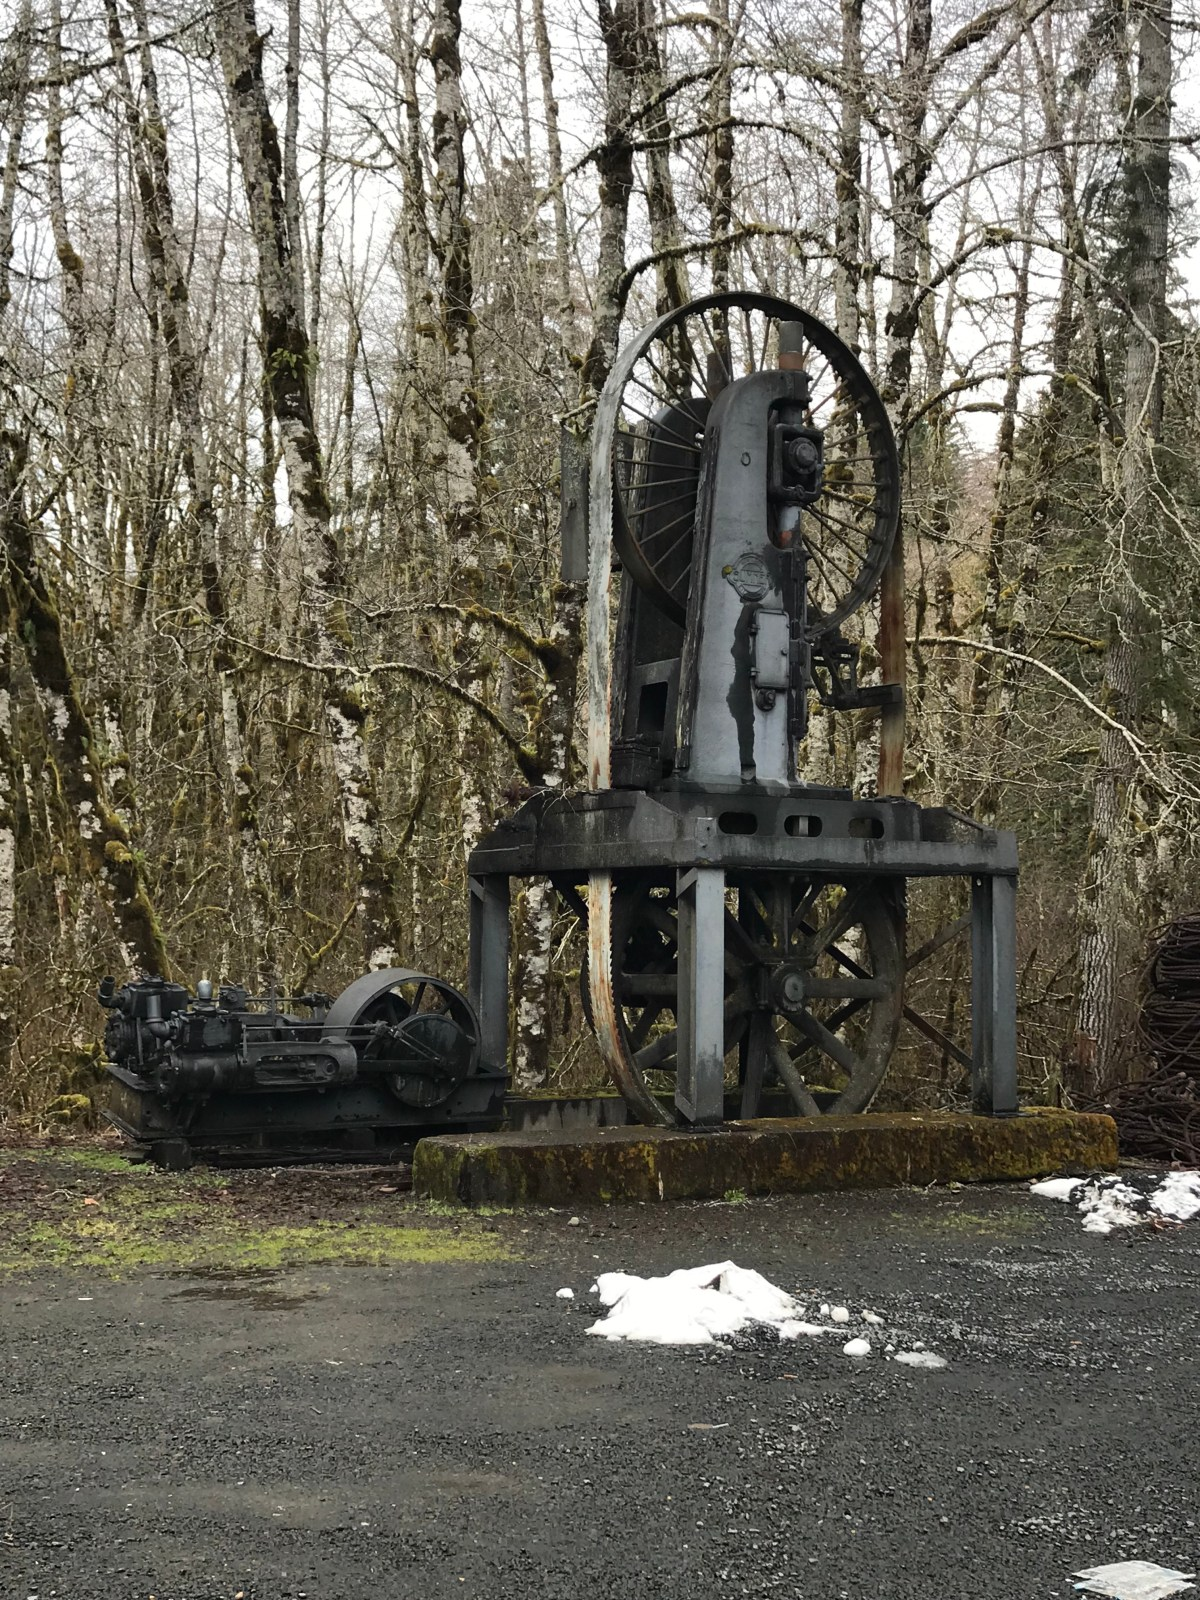 A Bandsaw by James McKinley